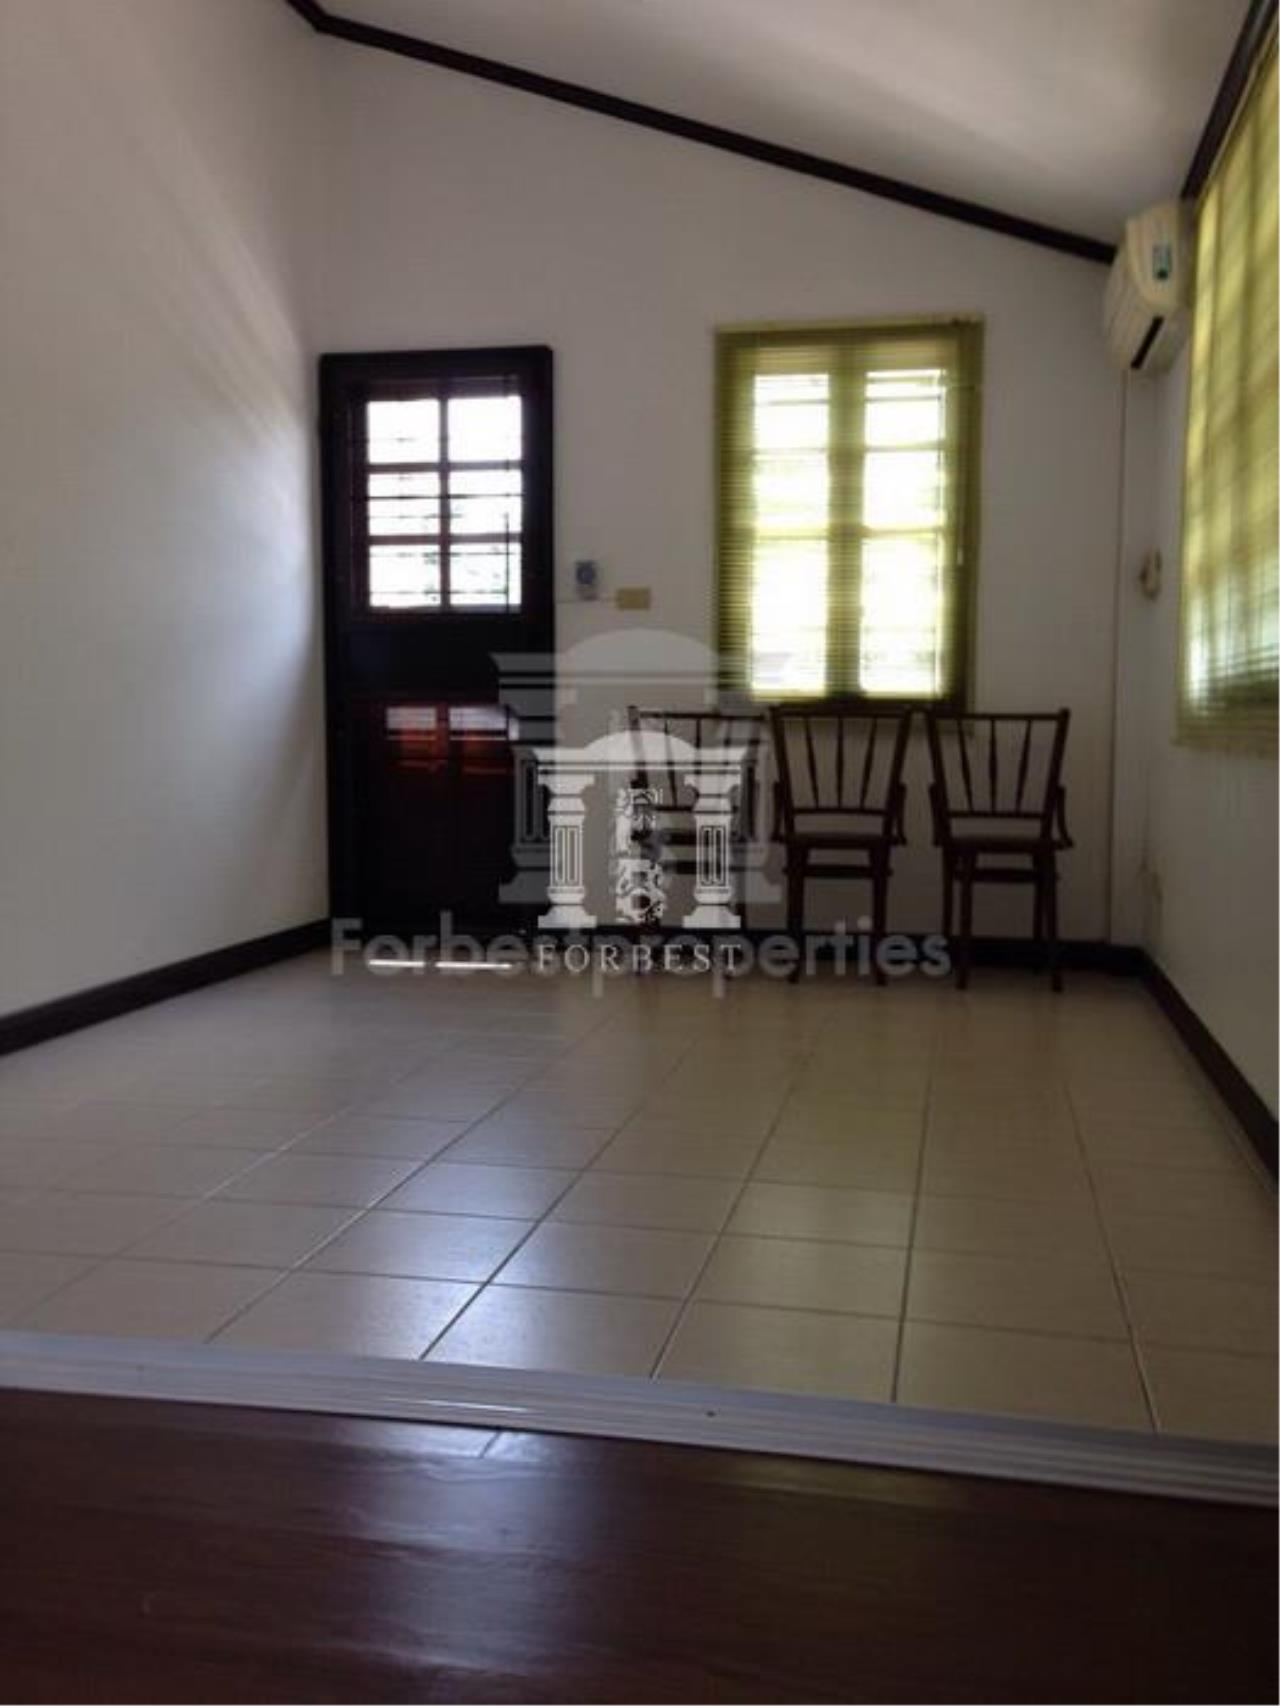 Forbest Properties Agency's 36774 - Single house  Manthana Village Ramintra-Wongwaen Road. 143 sq.w. 6